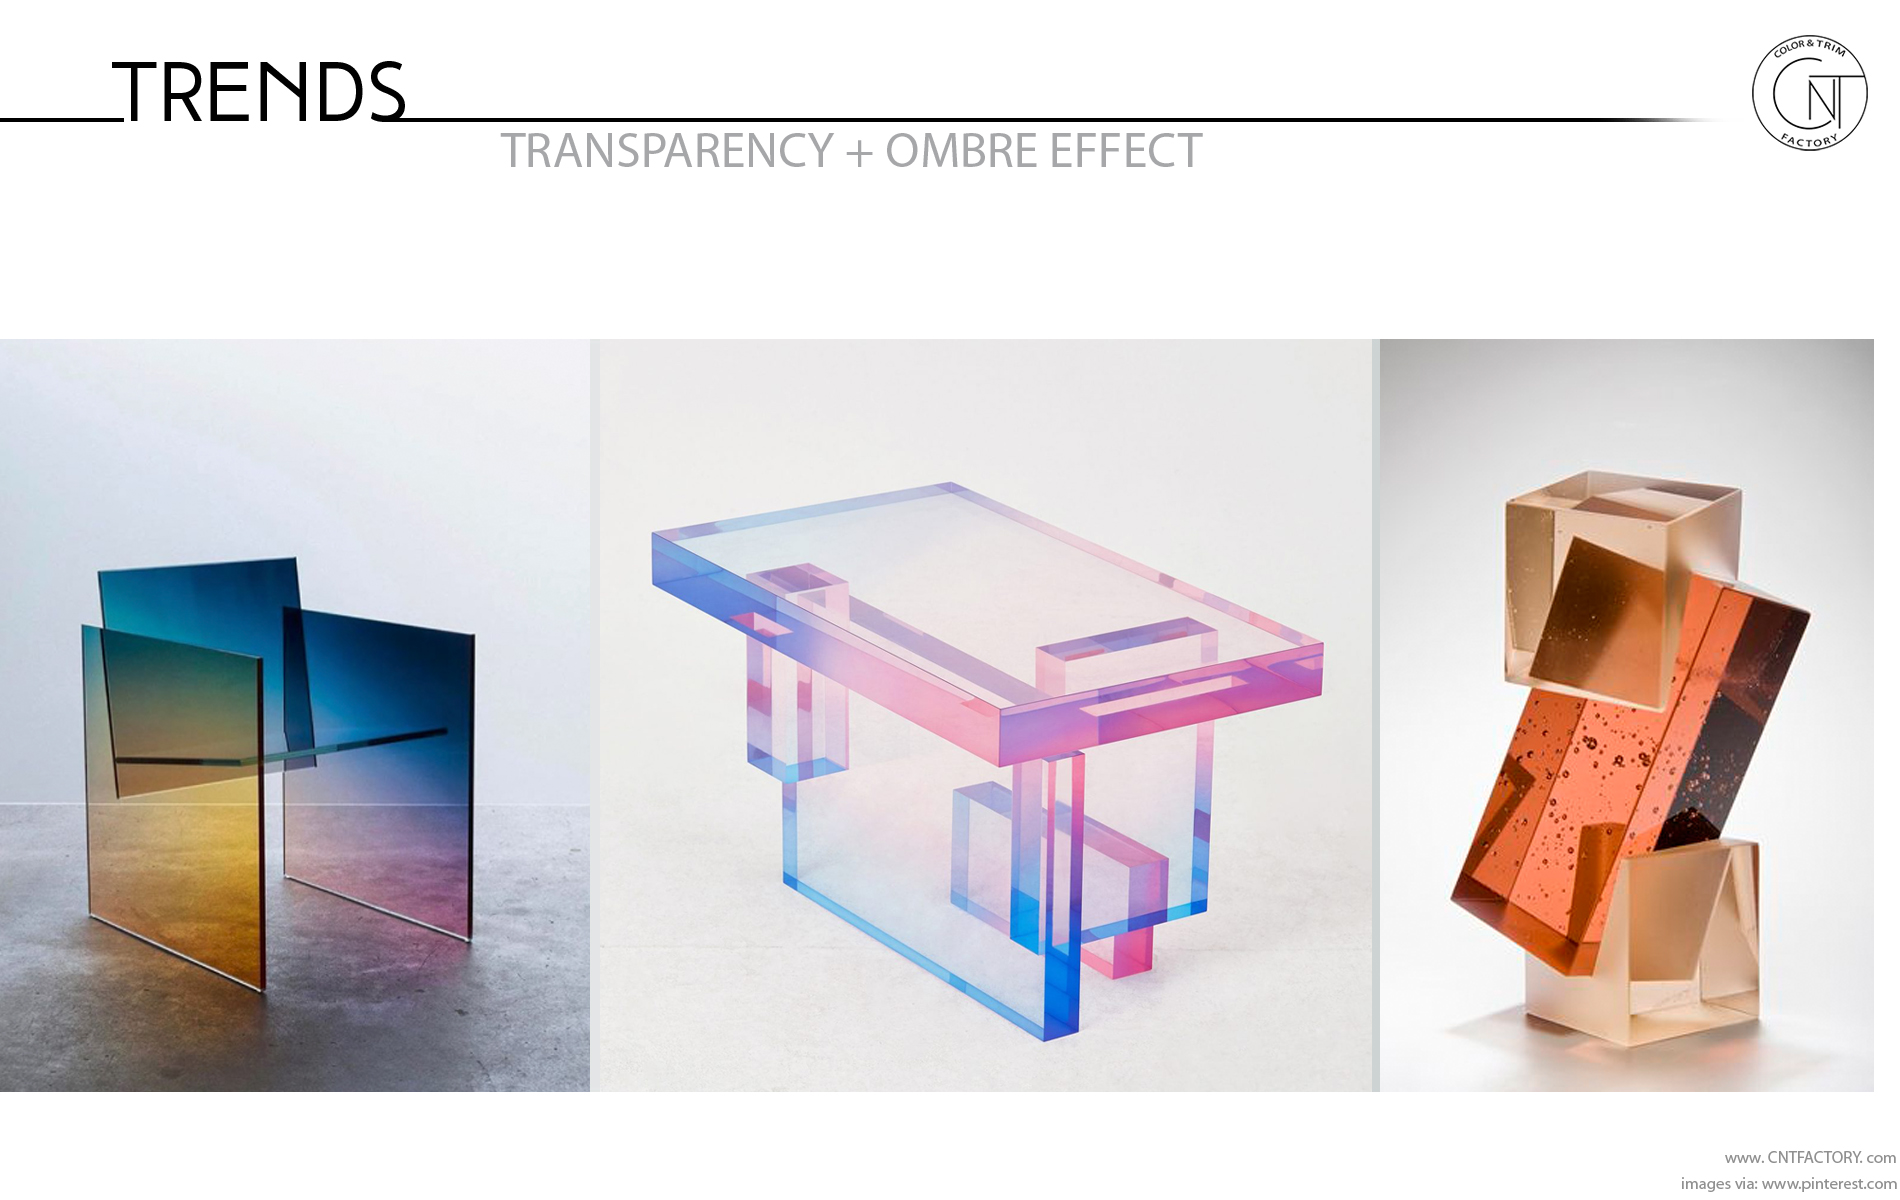 Transparent Ombre Effects